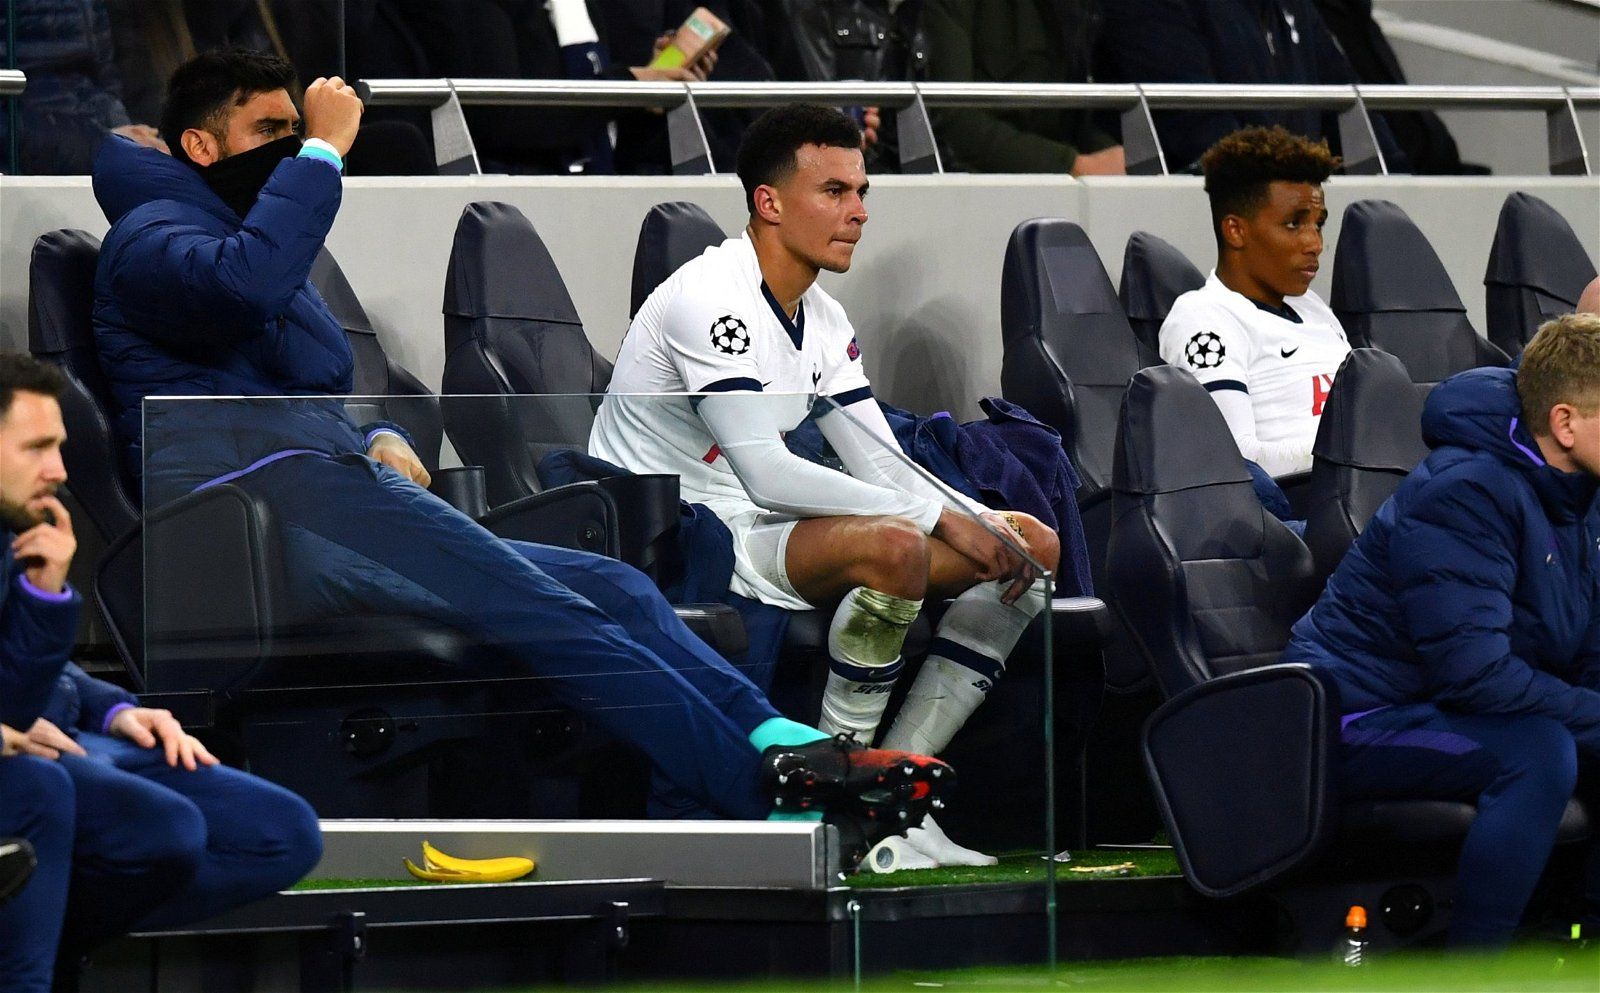 a-frustrated-dele-alli-is-substituted-by-jose-mourinho-bench-vs-leipzig-ucl